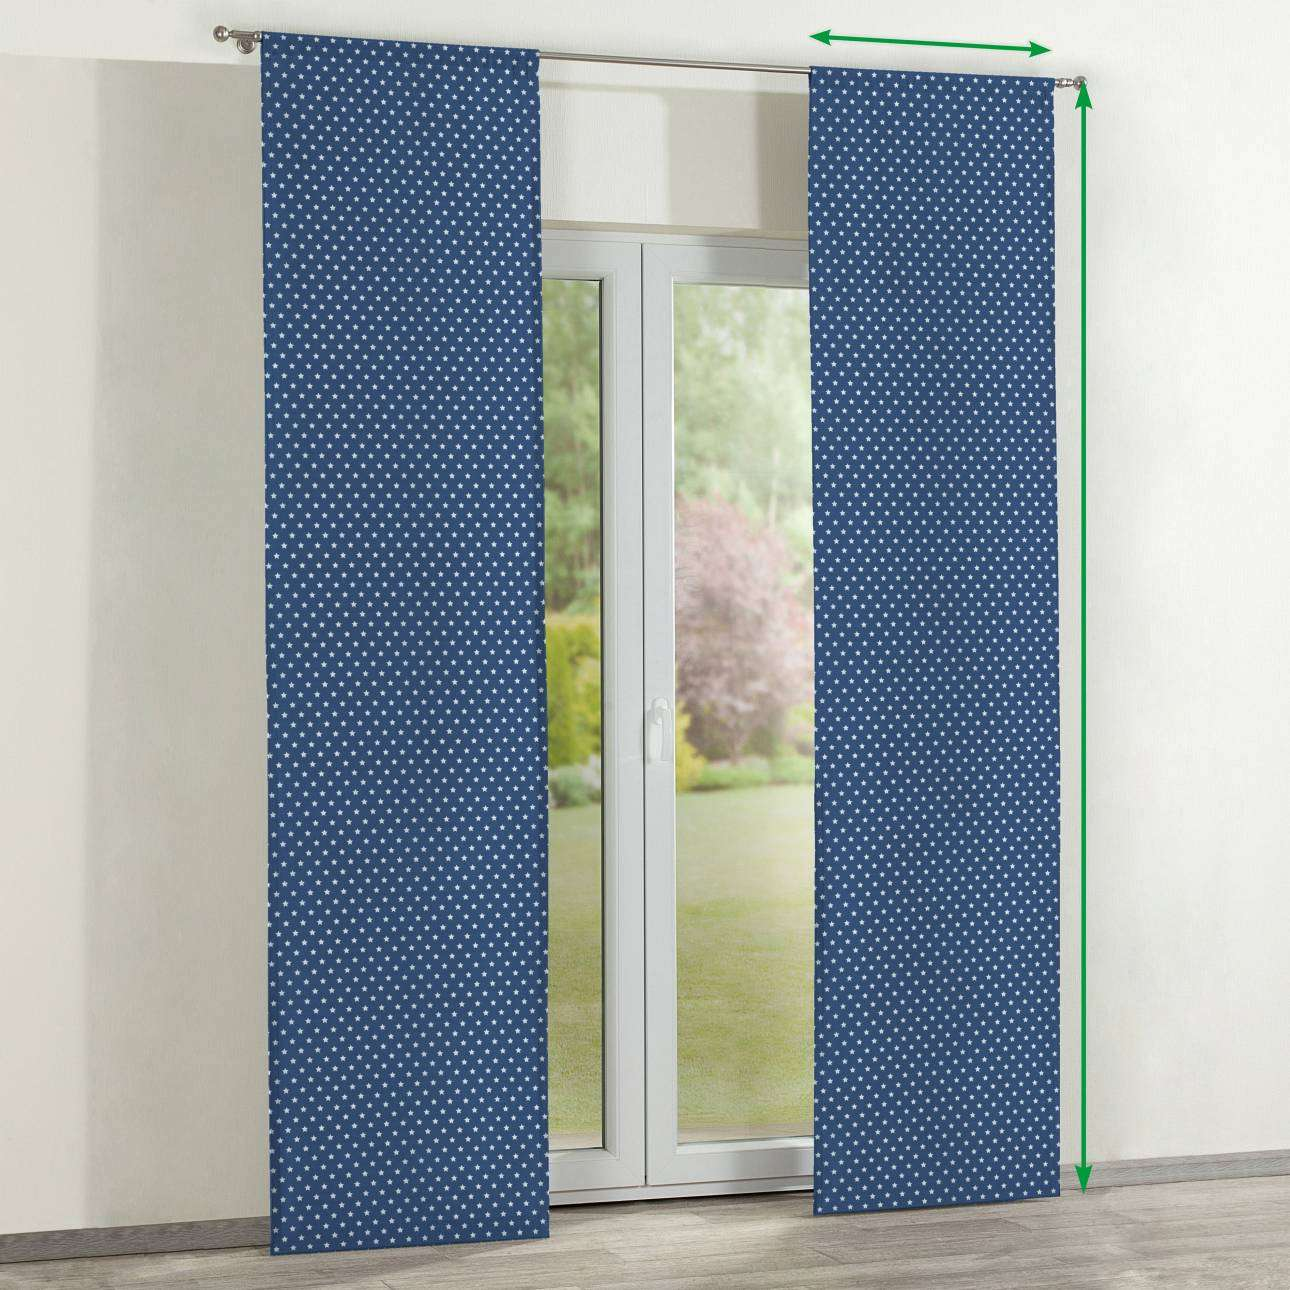 Slot panel curtains – Set of 2 in collection Ashley, fabric: 137-72